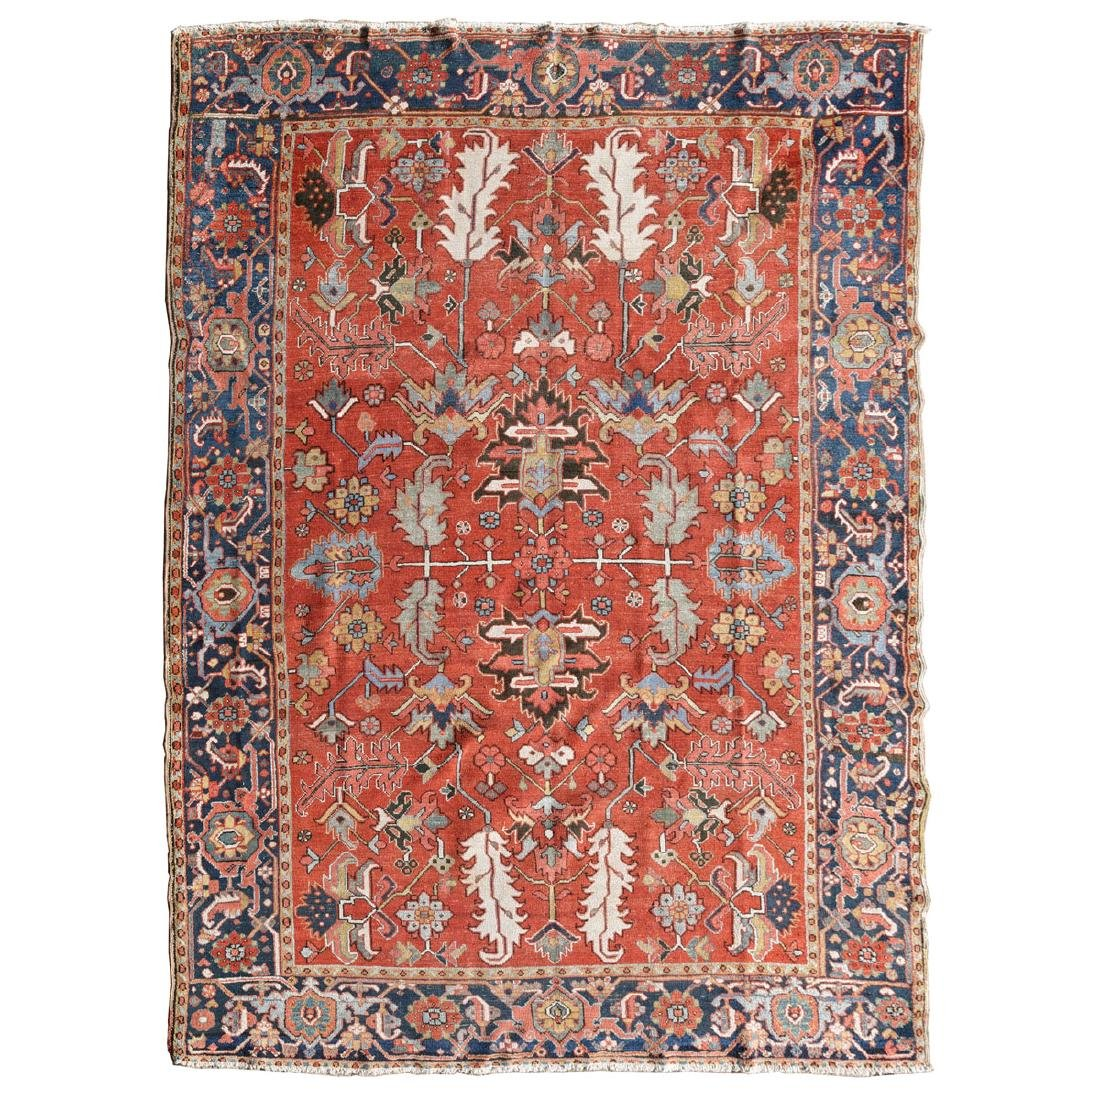 Heriz Carpet, Early 20th Century